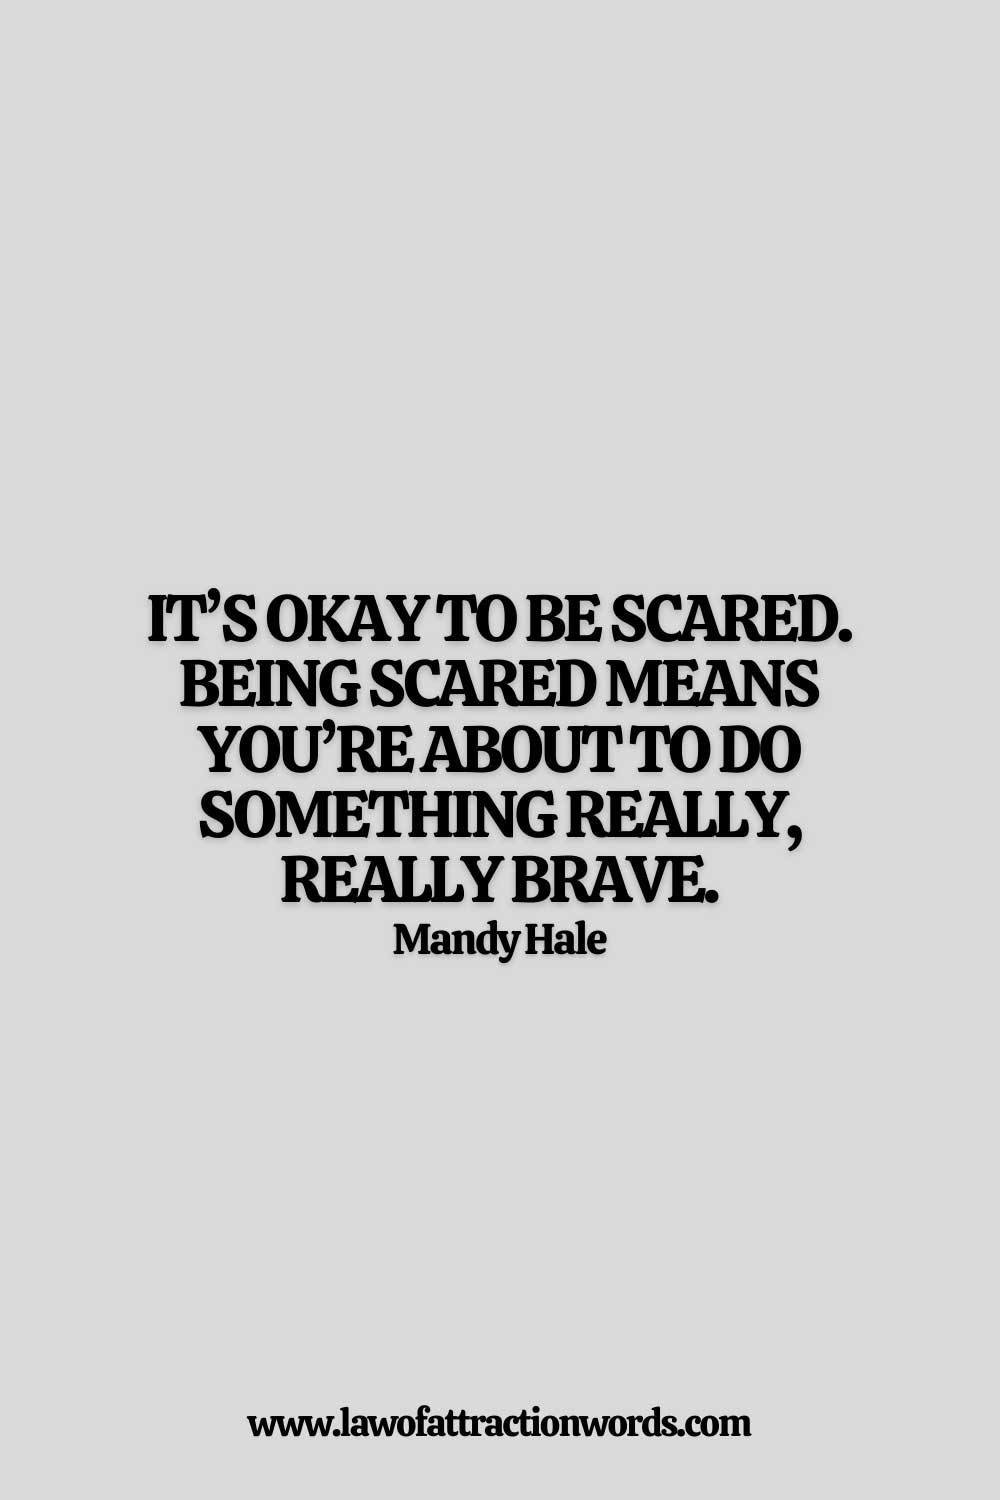 Motivational Quotes About Overcome Fear and Anxiety